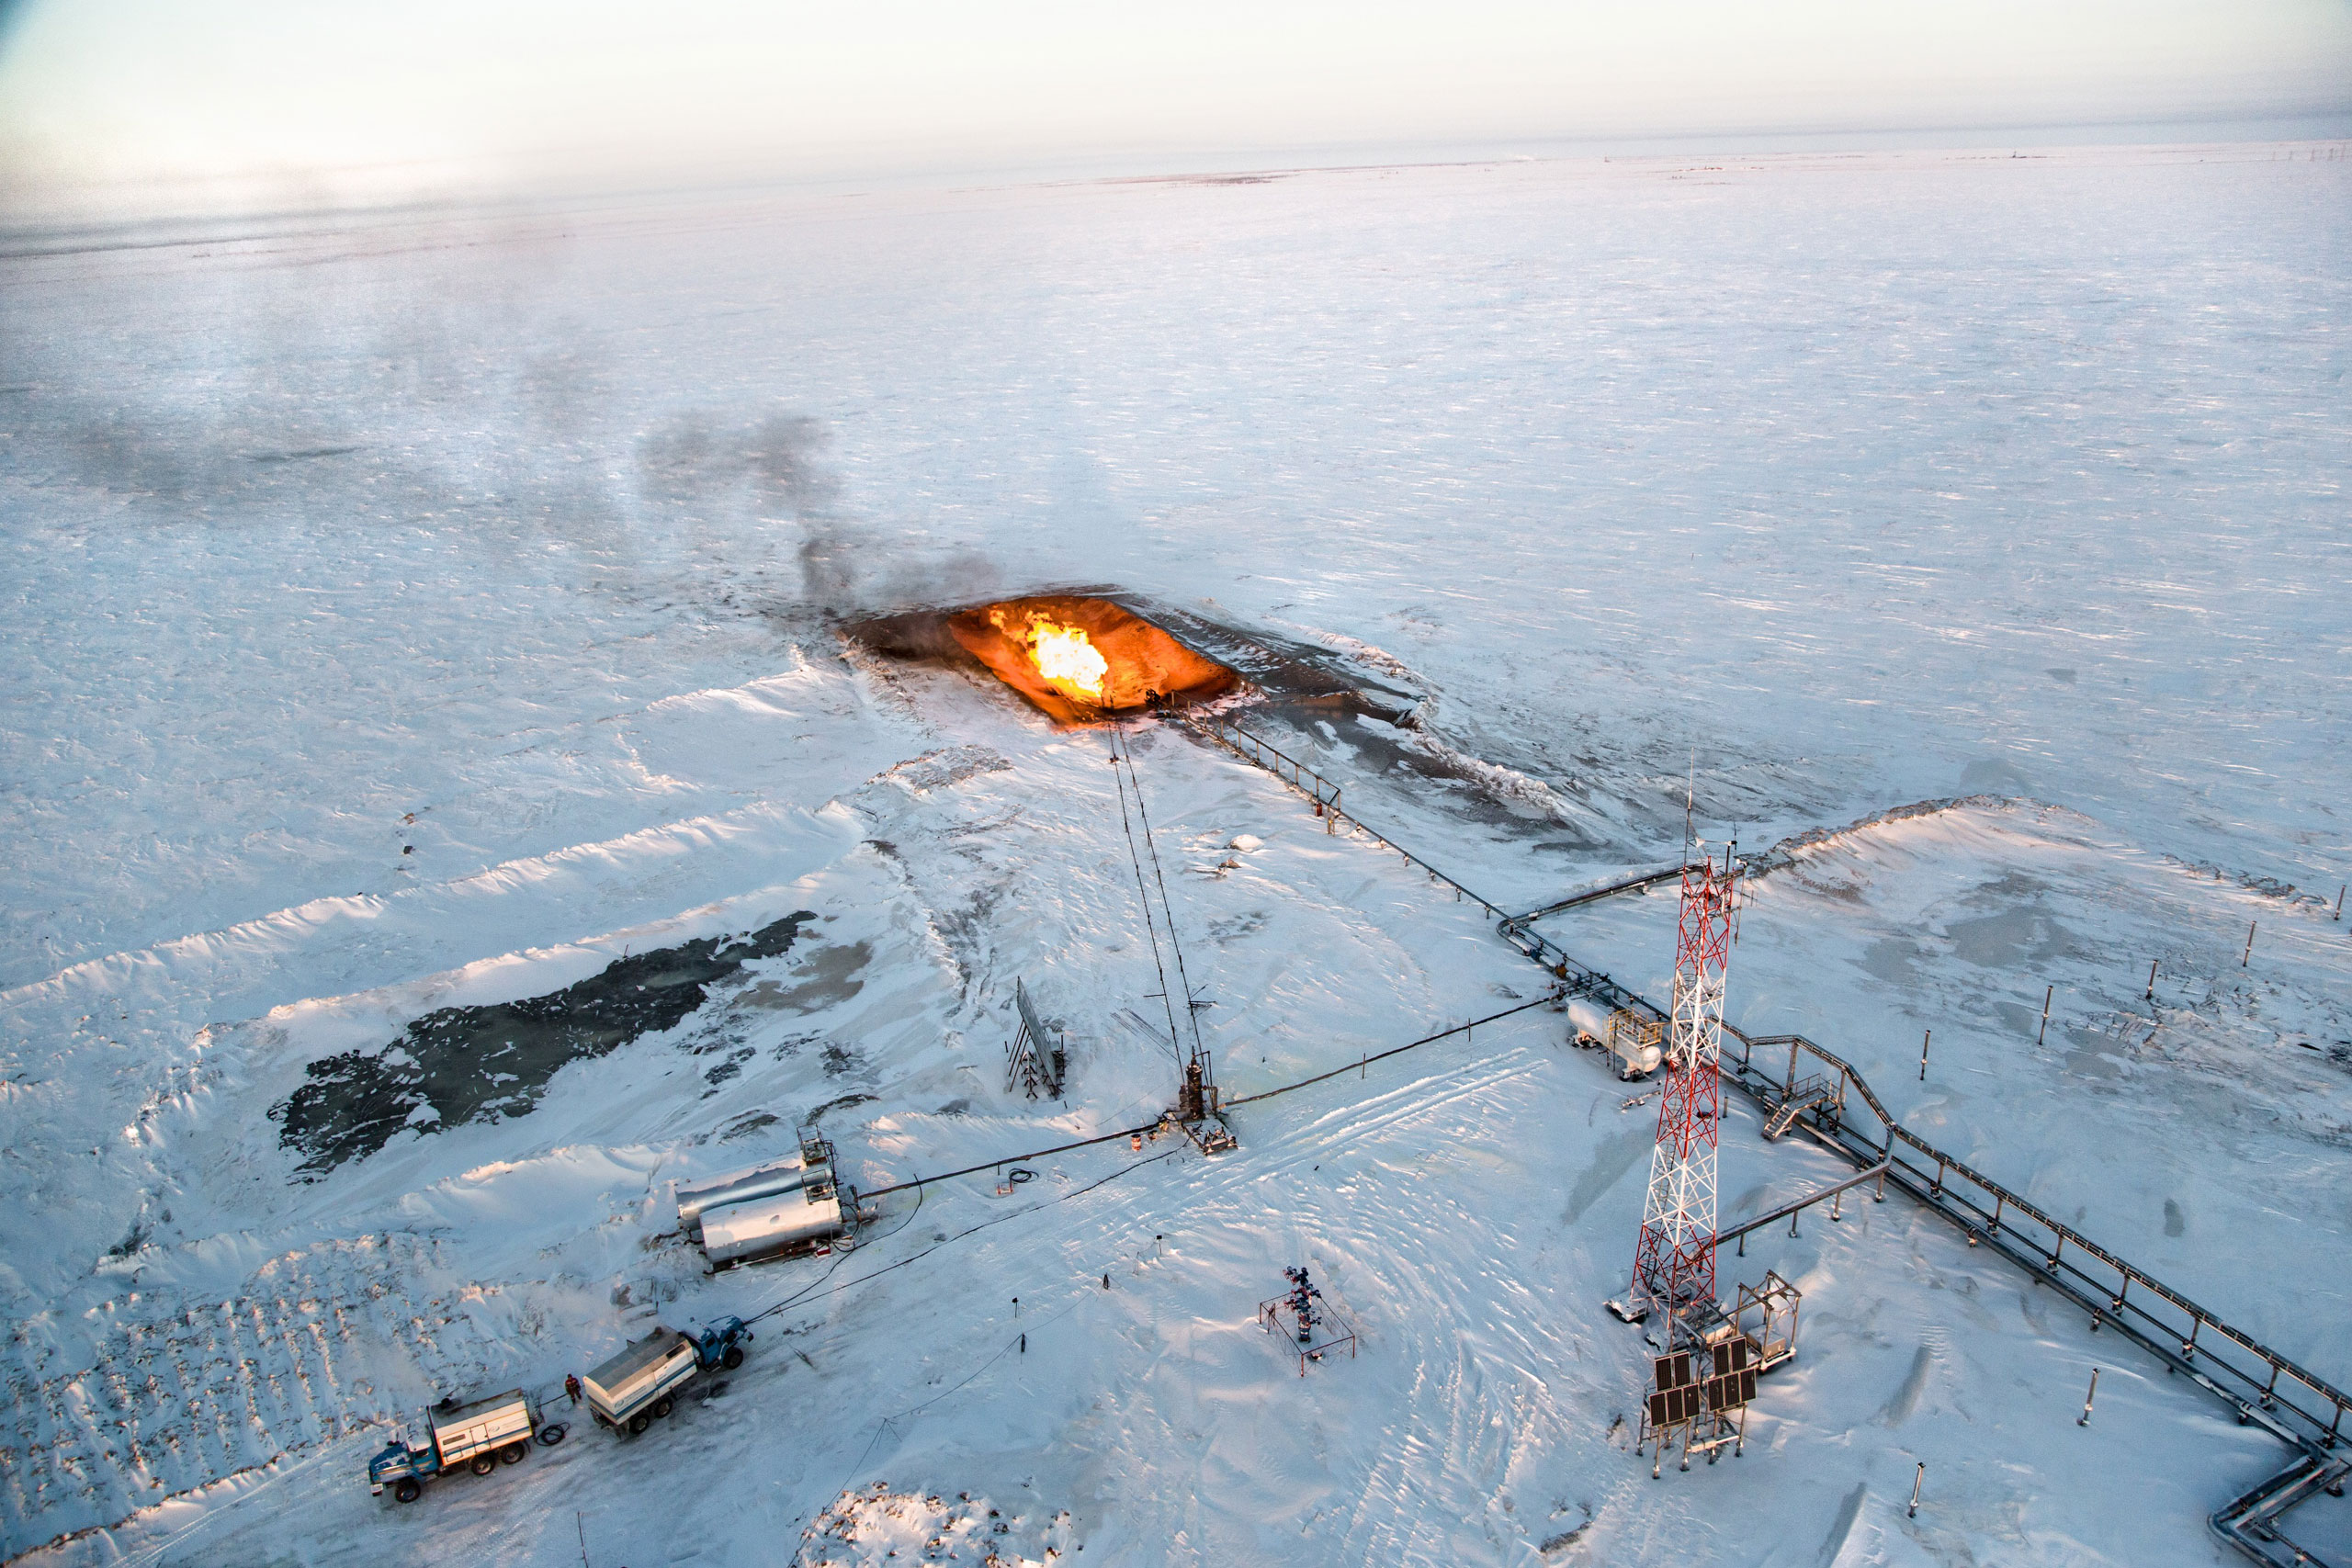 A gas flare is seen overhead at a drilling well in Novy Urengoi, Arctic Siberia, Russia, December 2014.